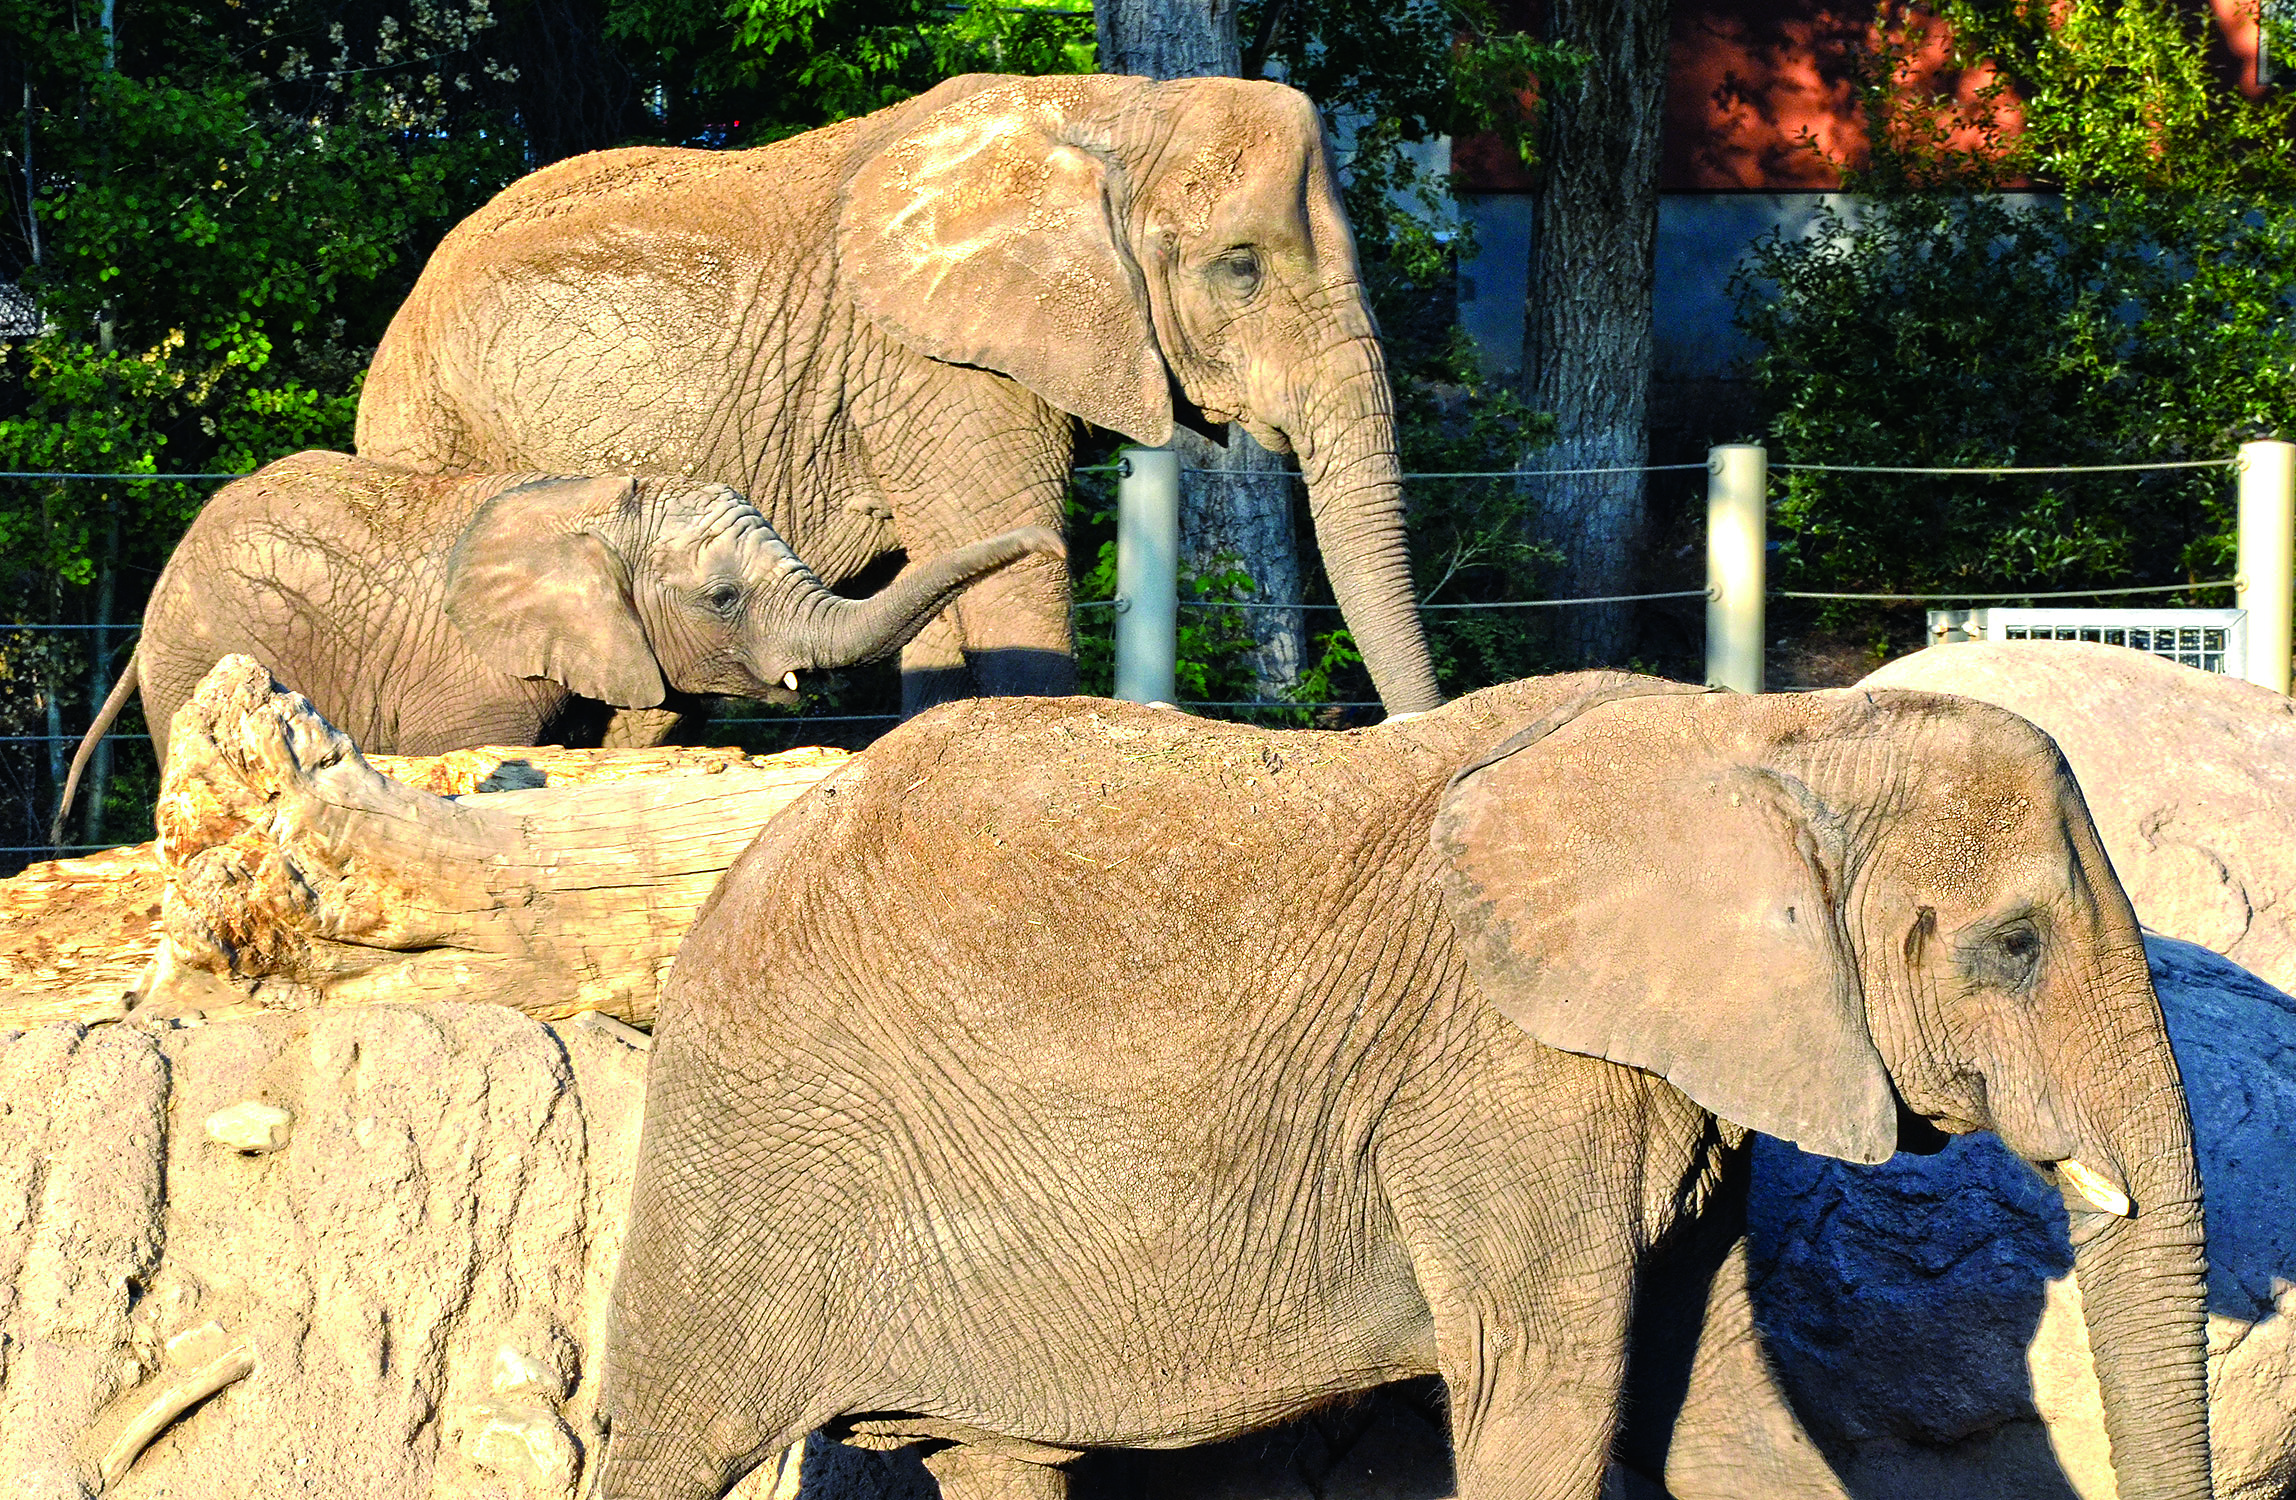 Elephants at Hogle Zoo